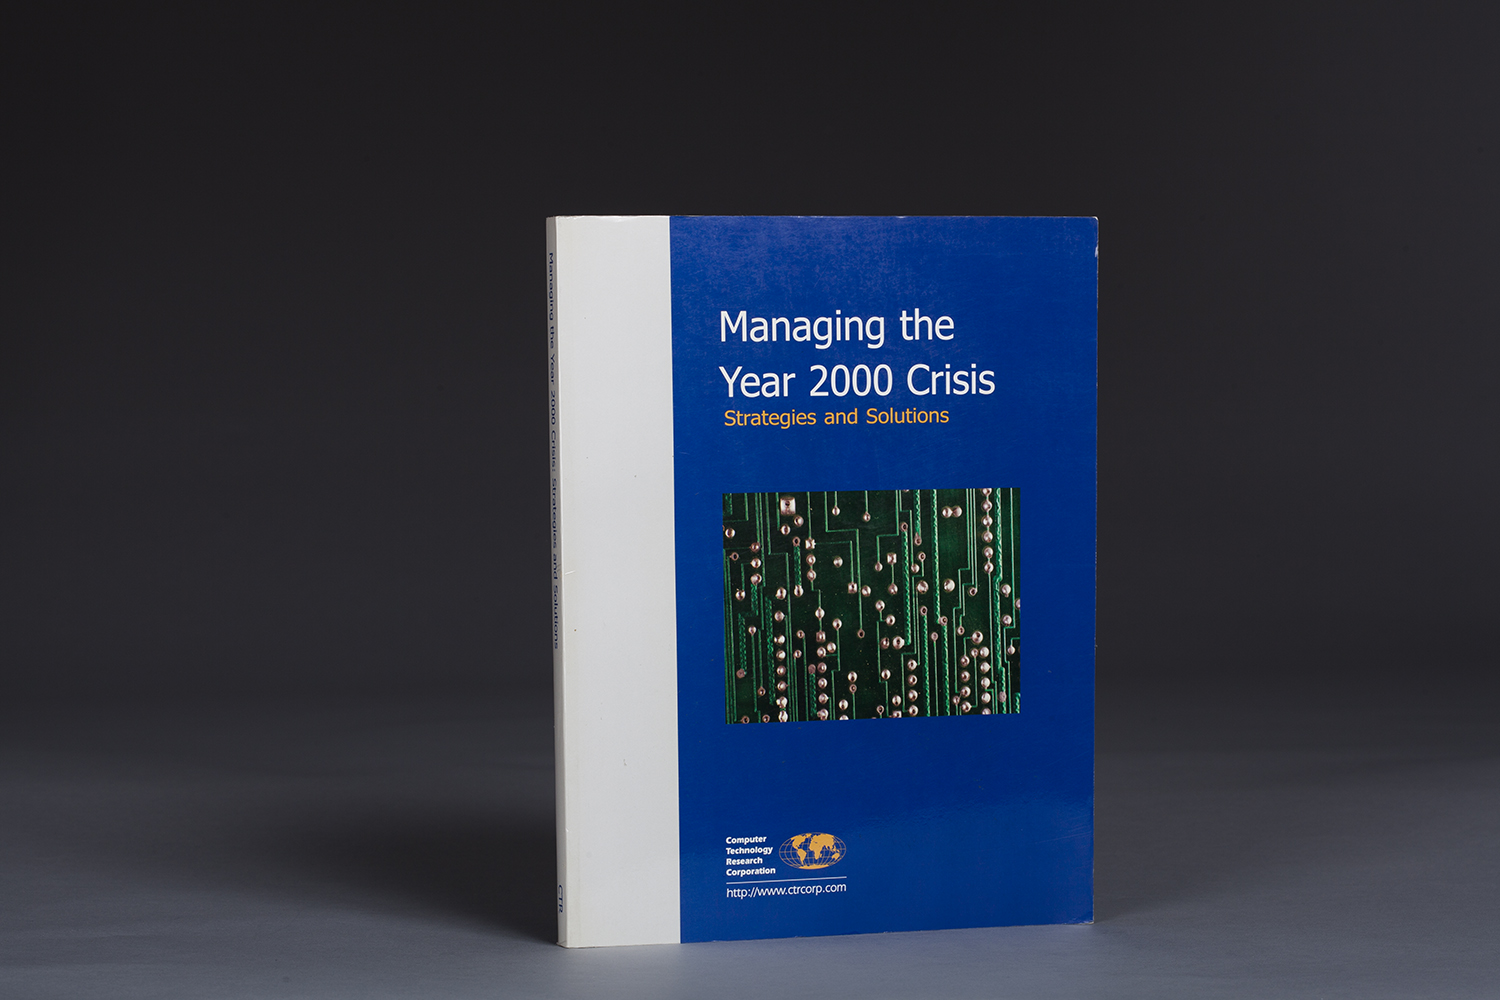 Managing the Year 2000 Crisis - 0113 Cover.jpg